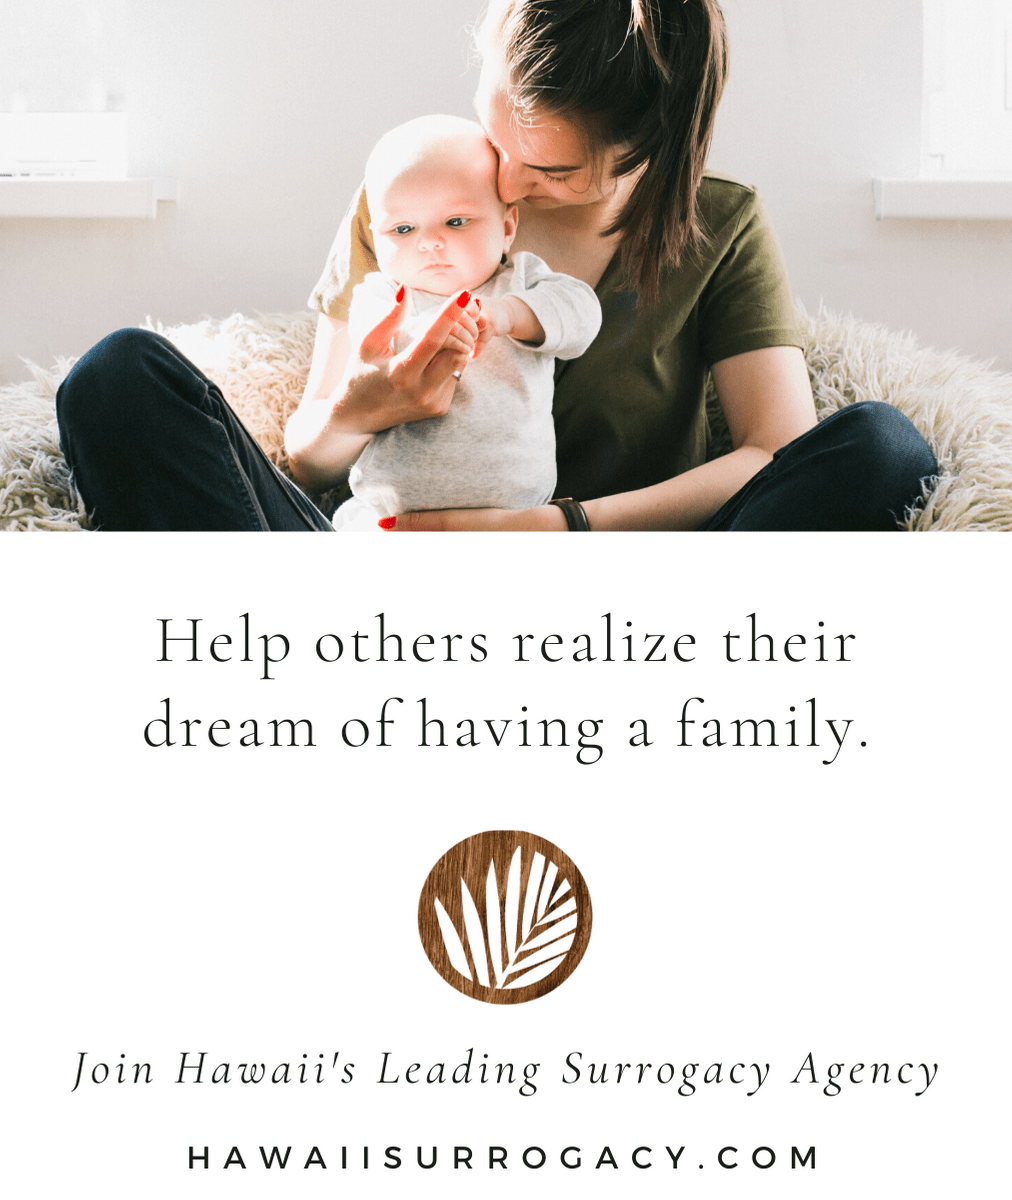 Hawaii Surrogacy Center